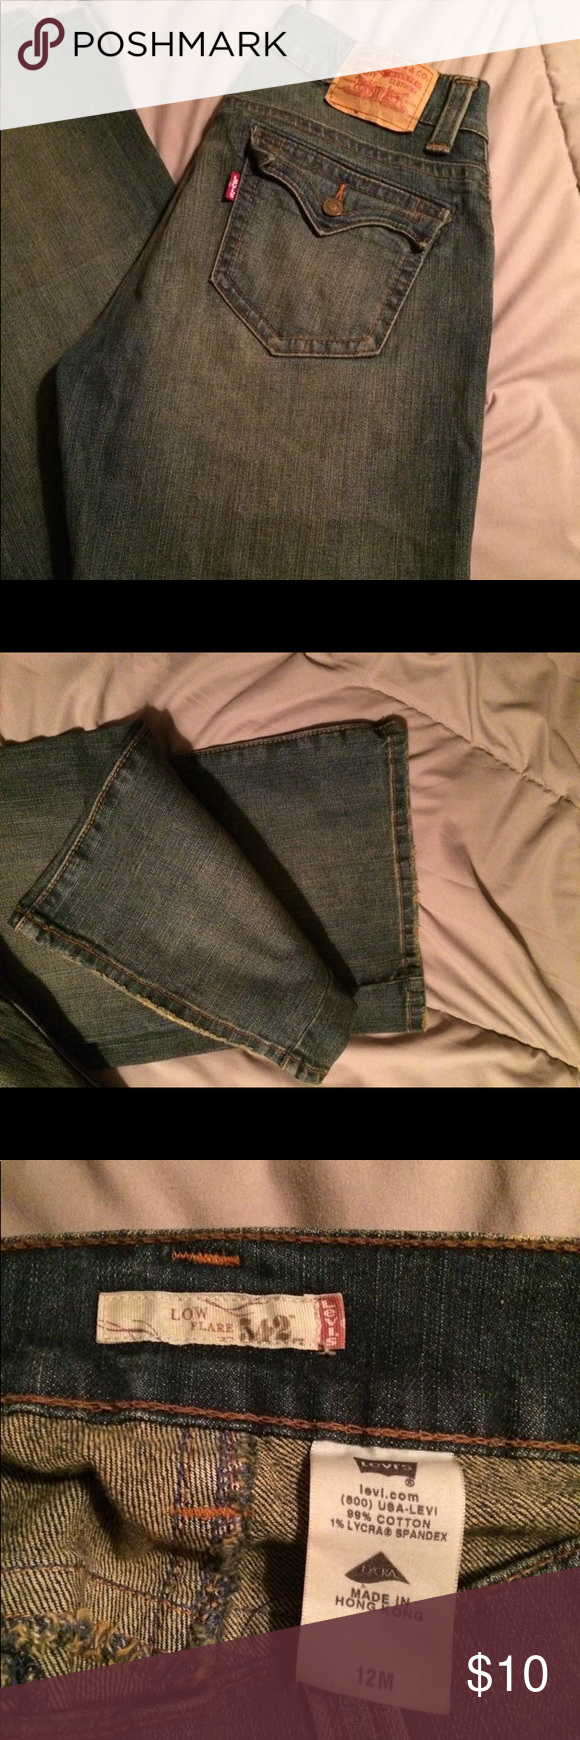 Size 12 Levi's Size 12 Levi's jeans. Good used condition. Levi's Jeans Flare & Wide Leg